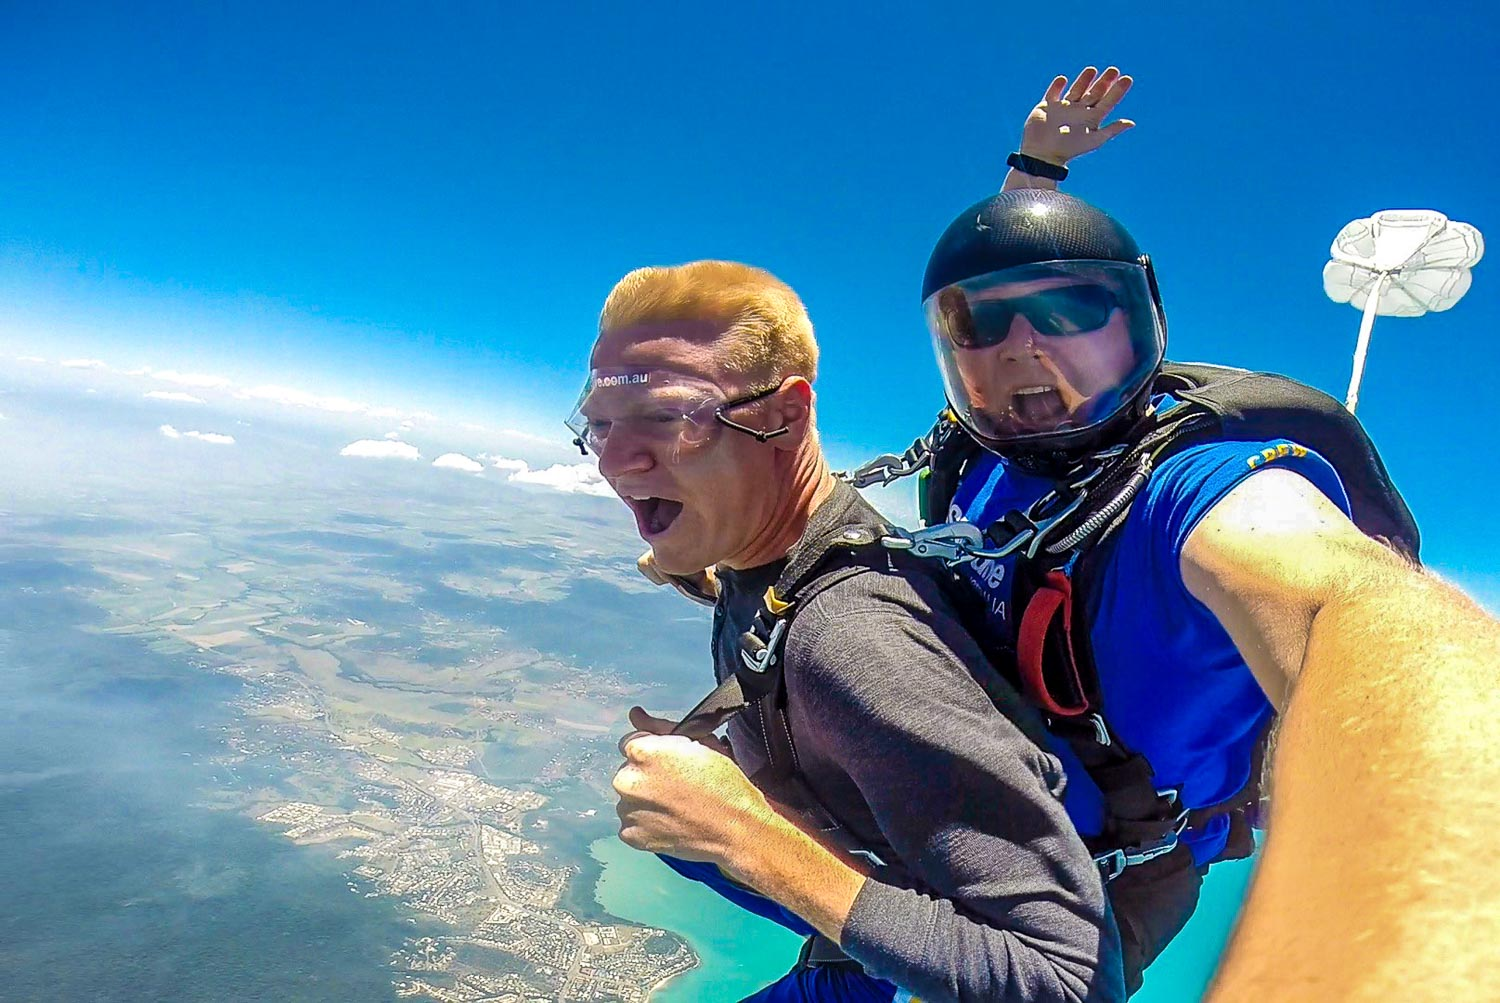 Skydive - Things To Do in Byron Bay